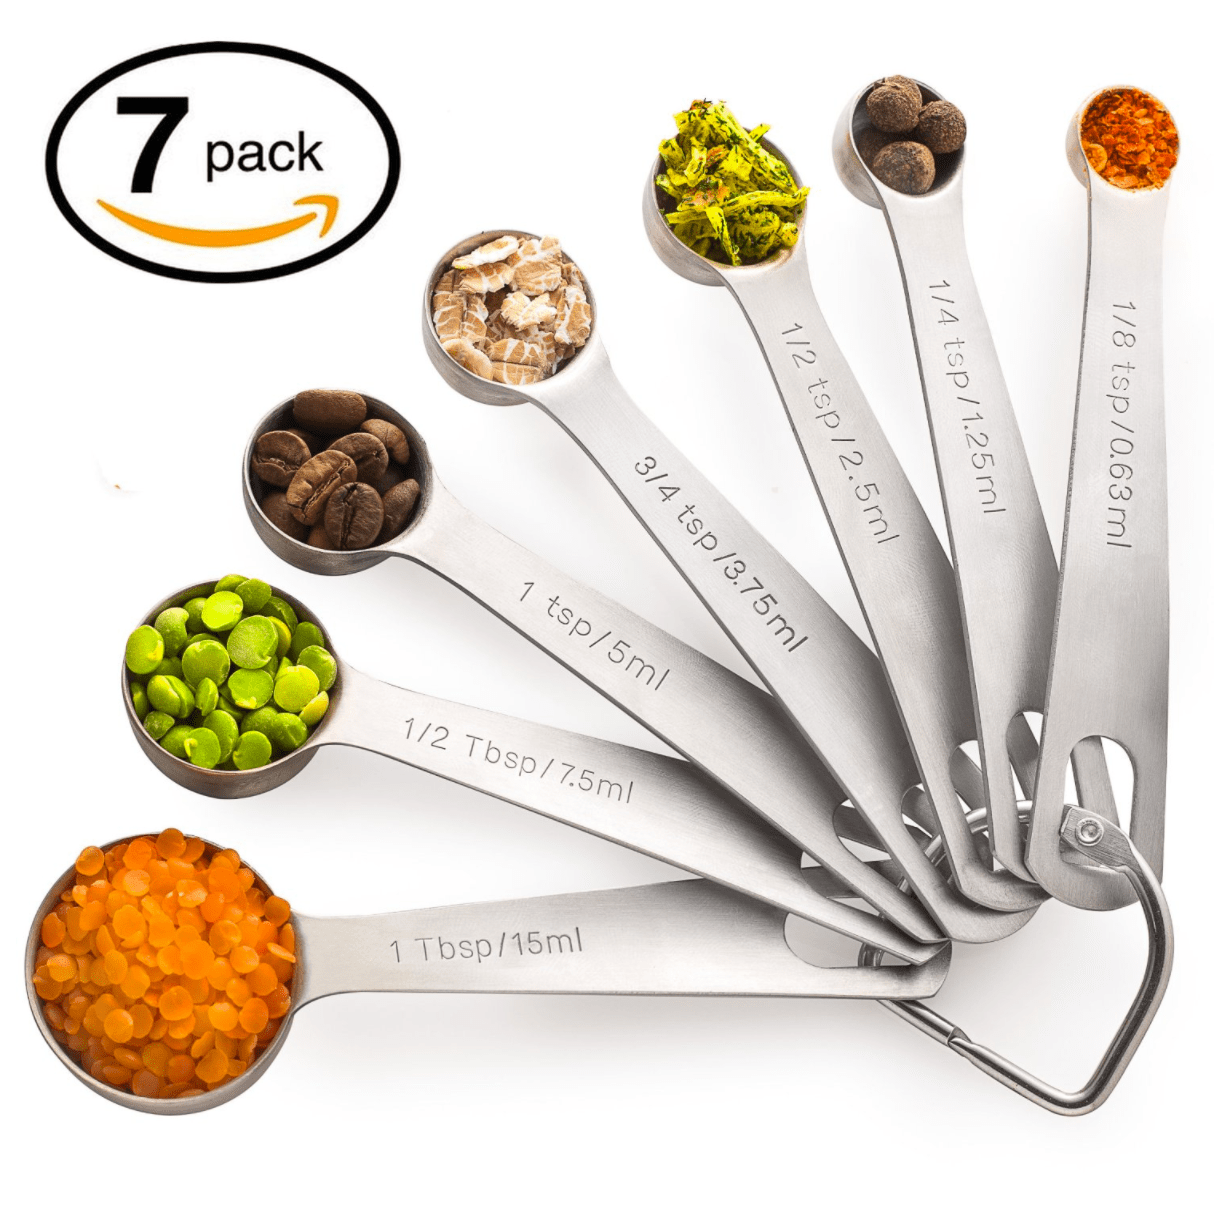 stainless-steel-measuring-spoons